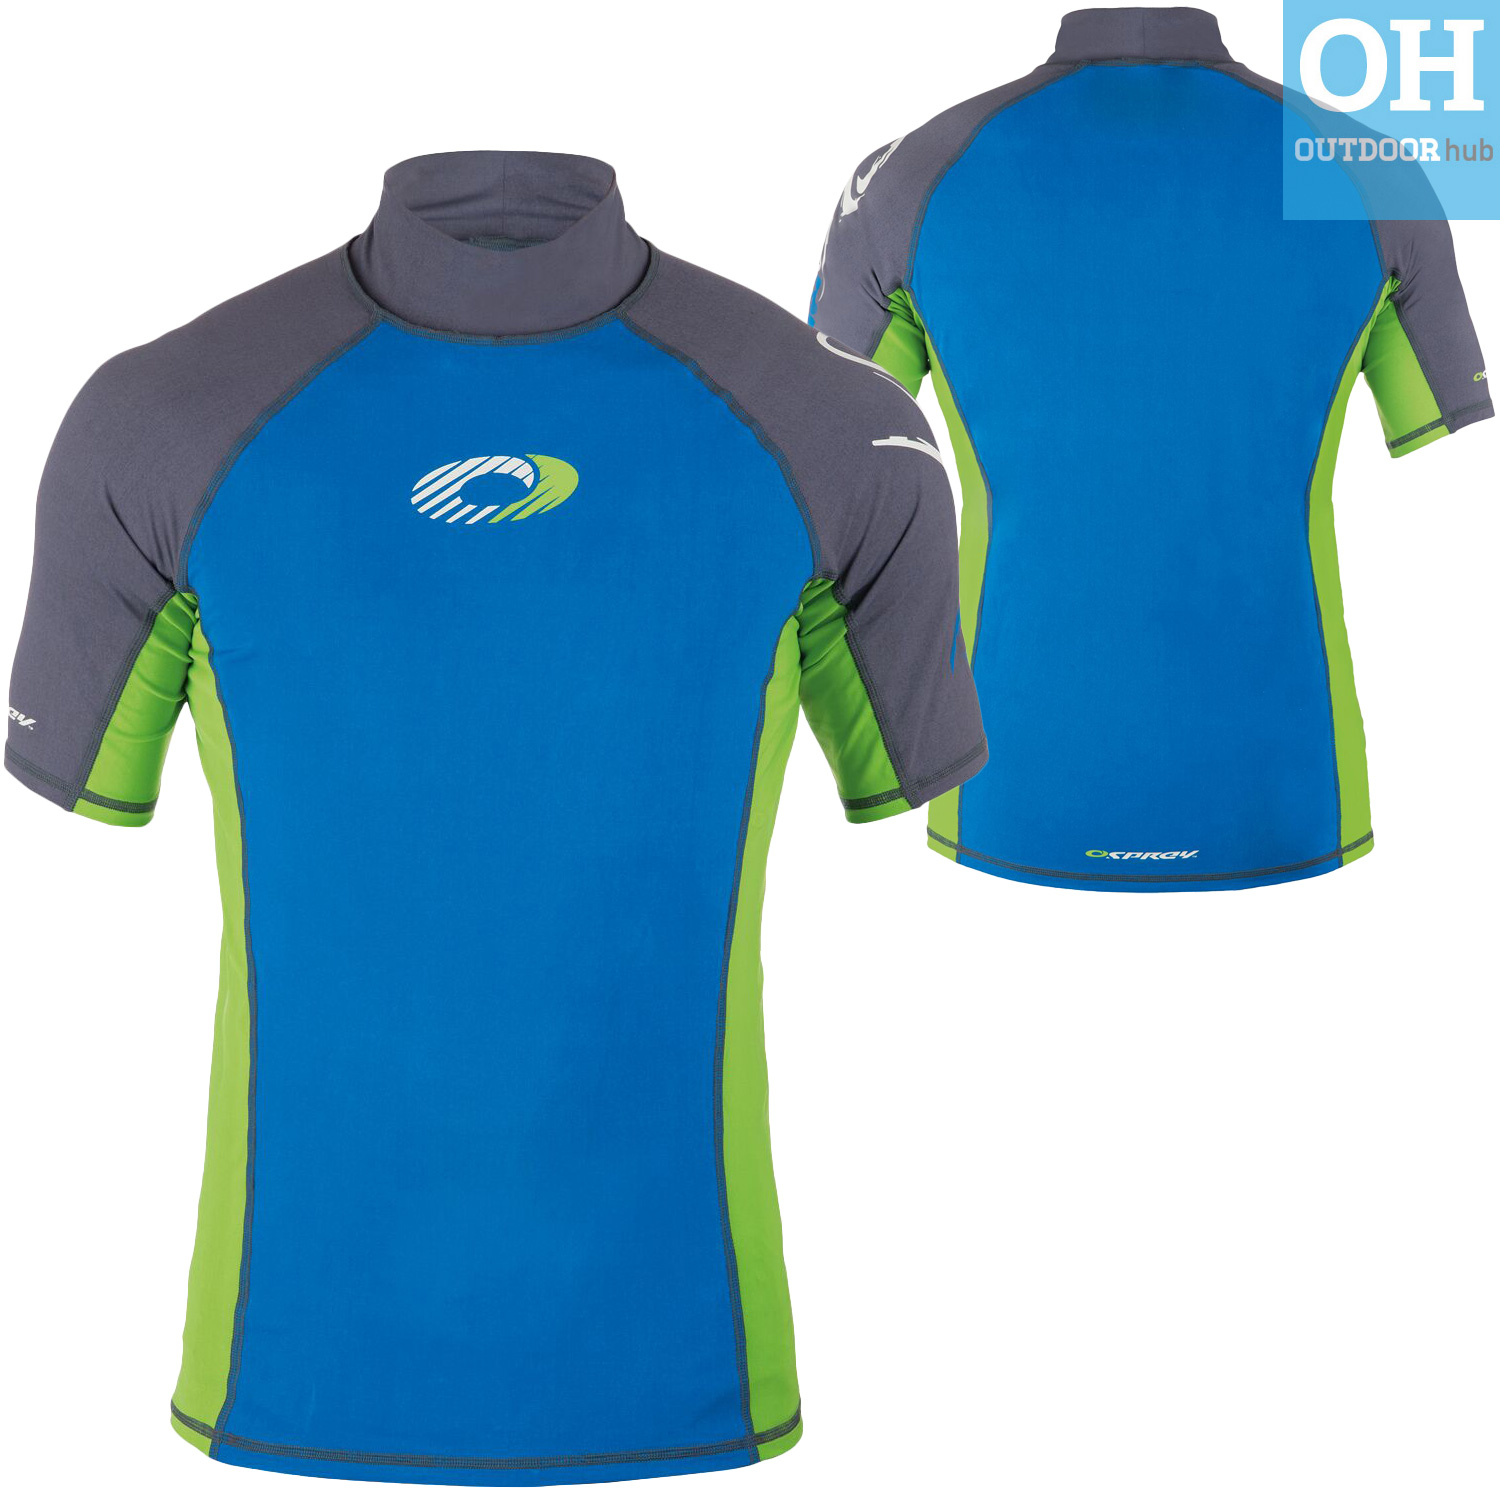 osprey mens short sleeve rash vest surf t shirt uv 50